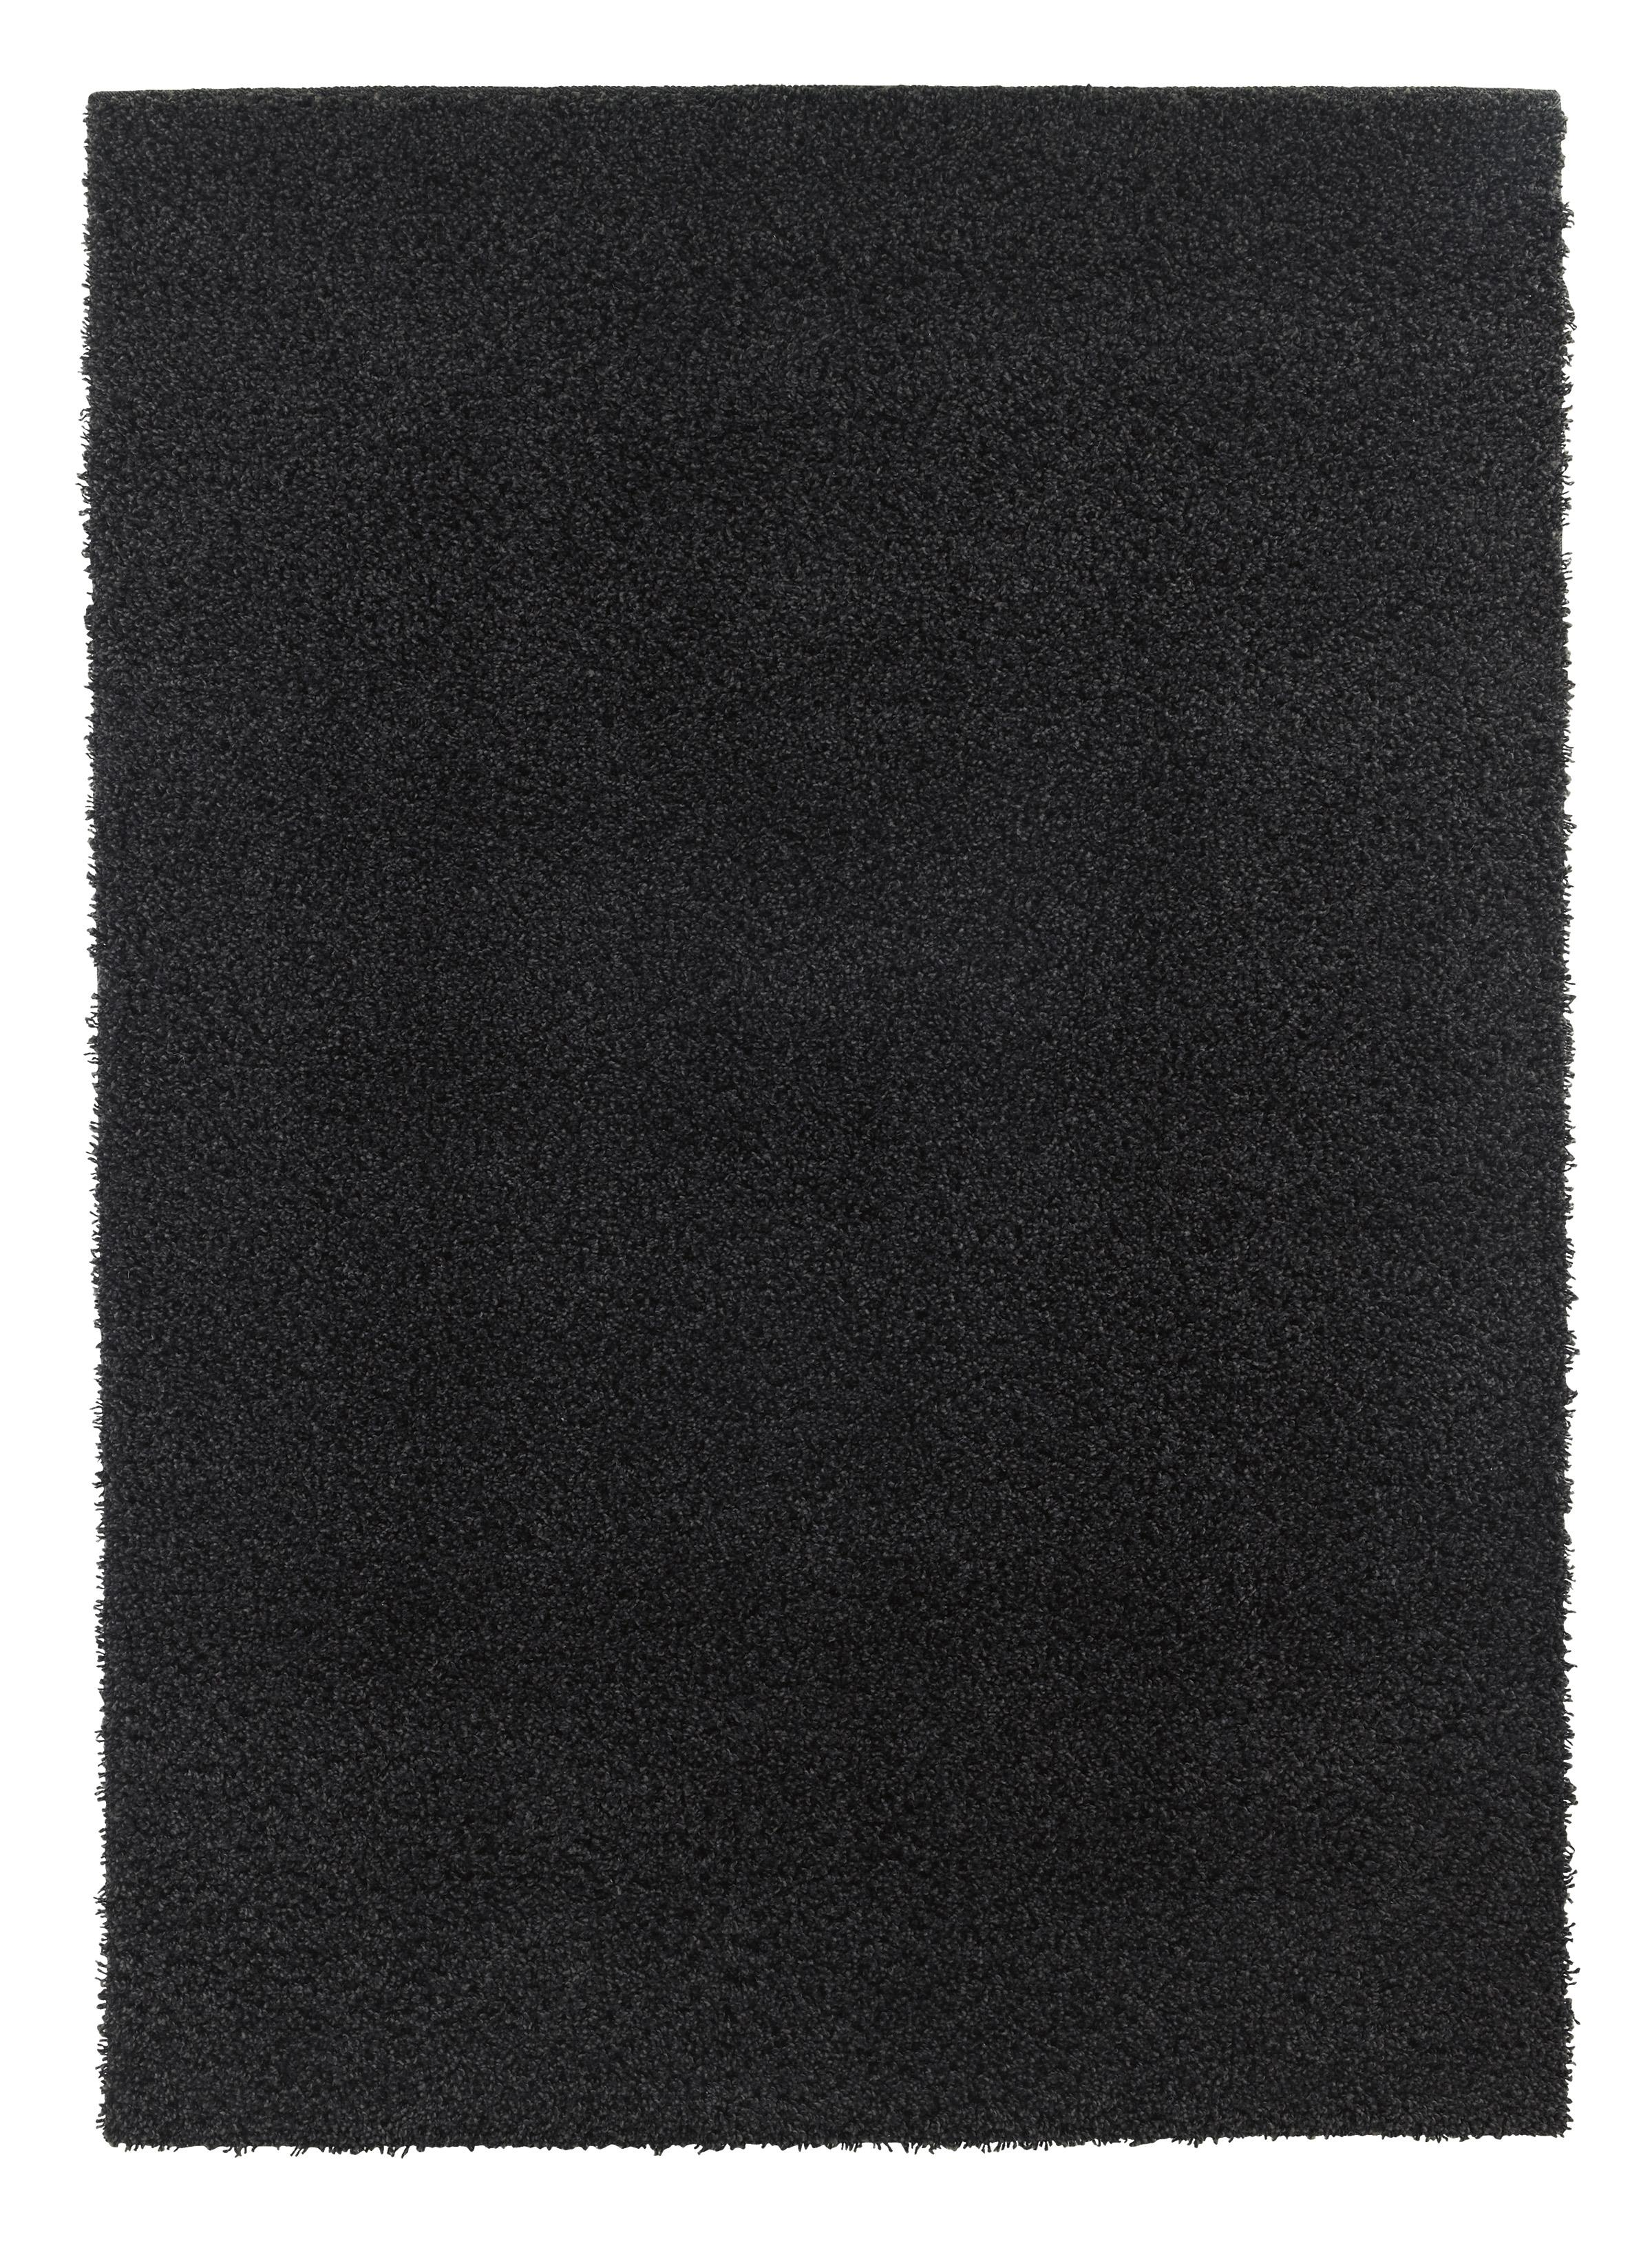 Signature Design by Ashley Transitional Area Rugs Caci Charcoal Medium Rug - Item Number: R320002